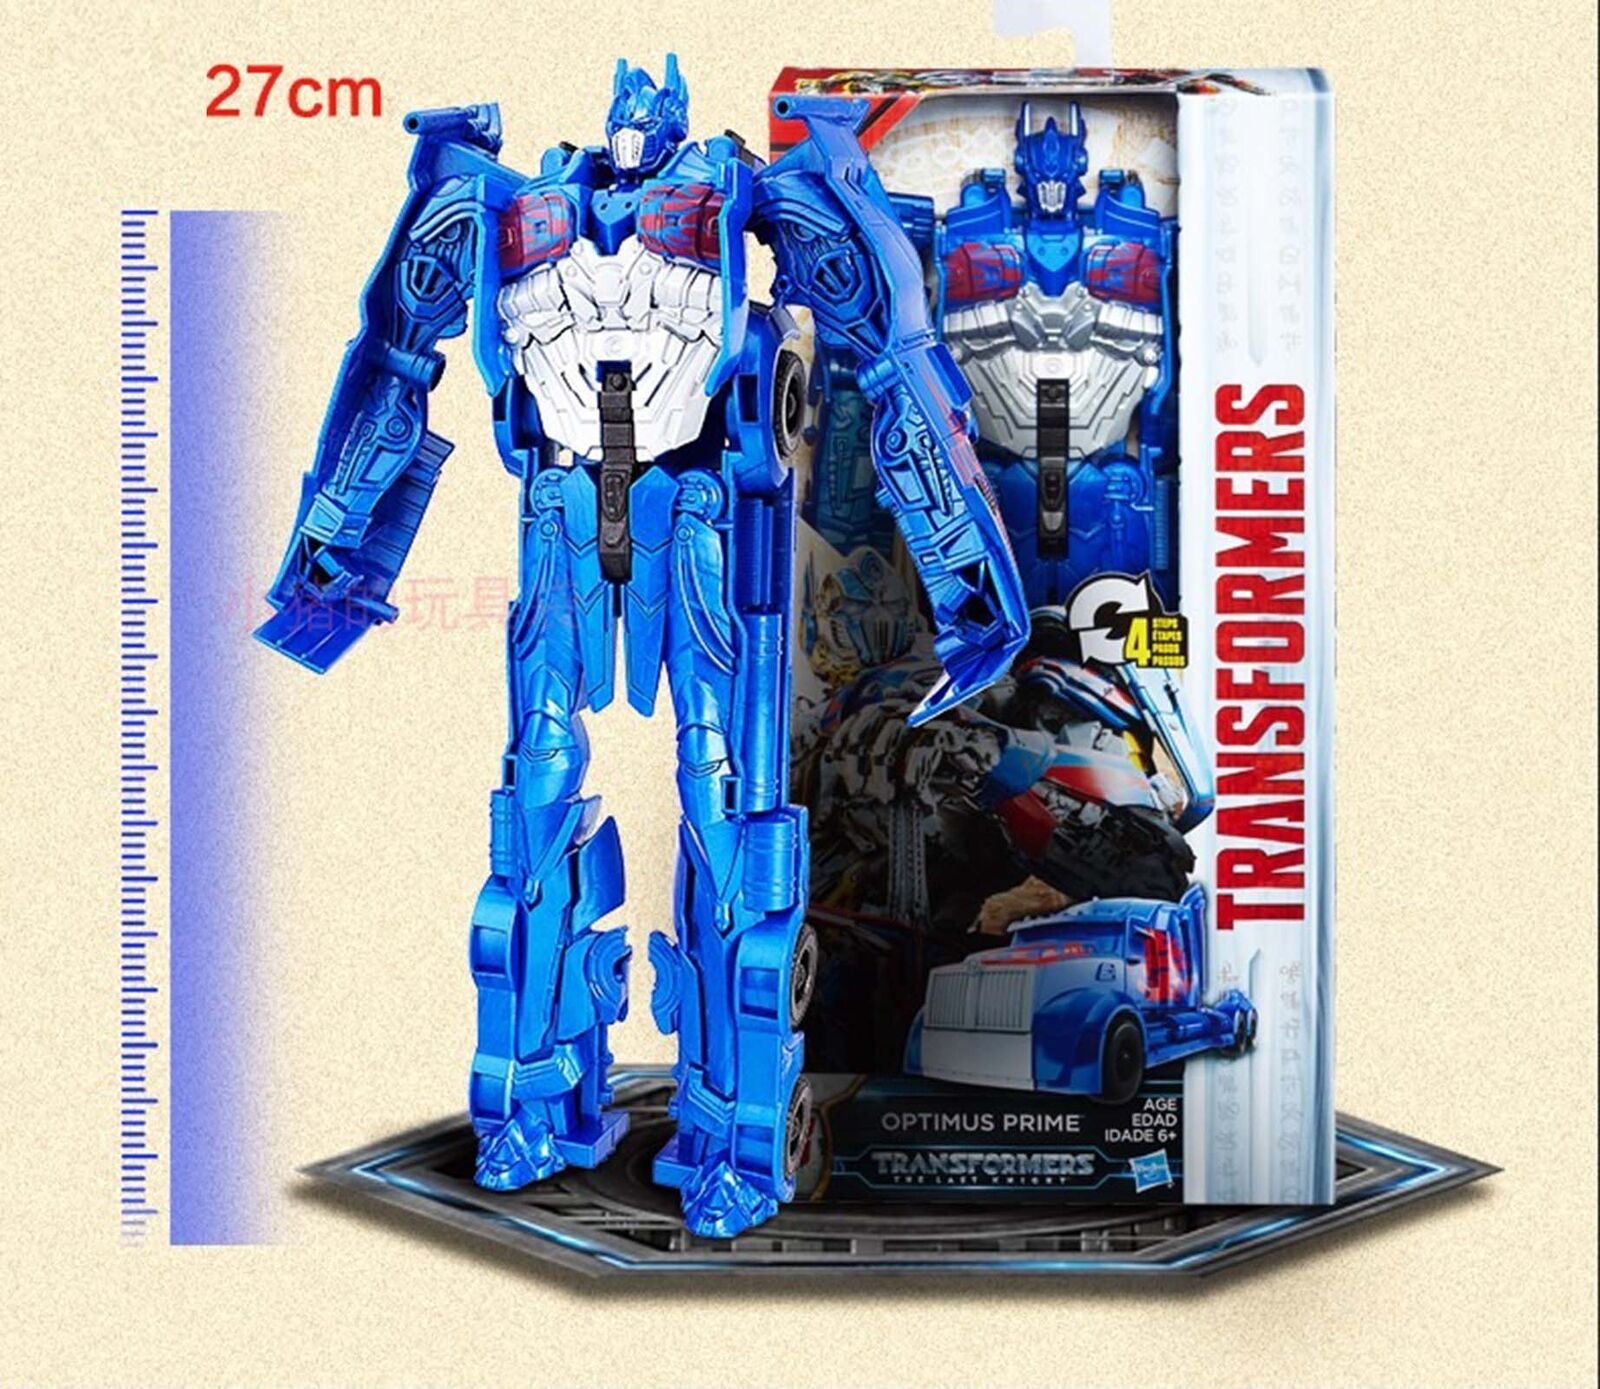 Transformers Movie 5 The Last Knight TITAN SERIES OPTIMUS PRIME Action Toy Gift